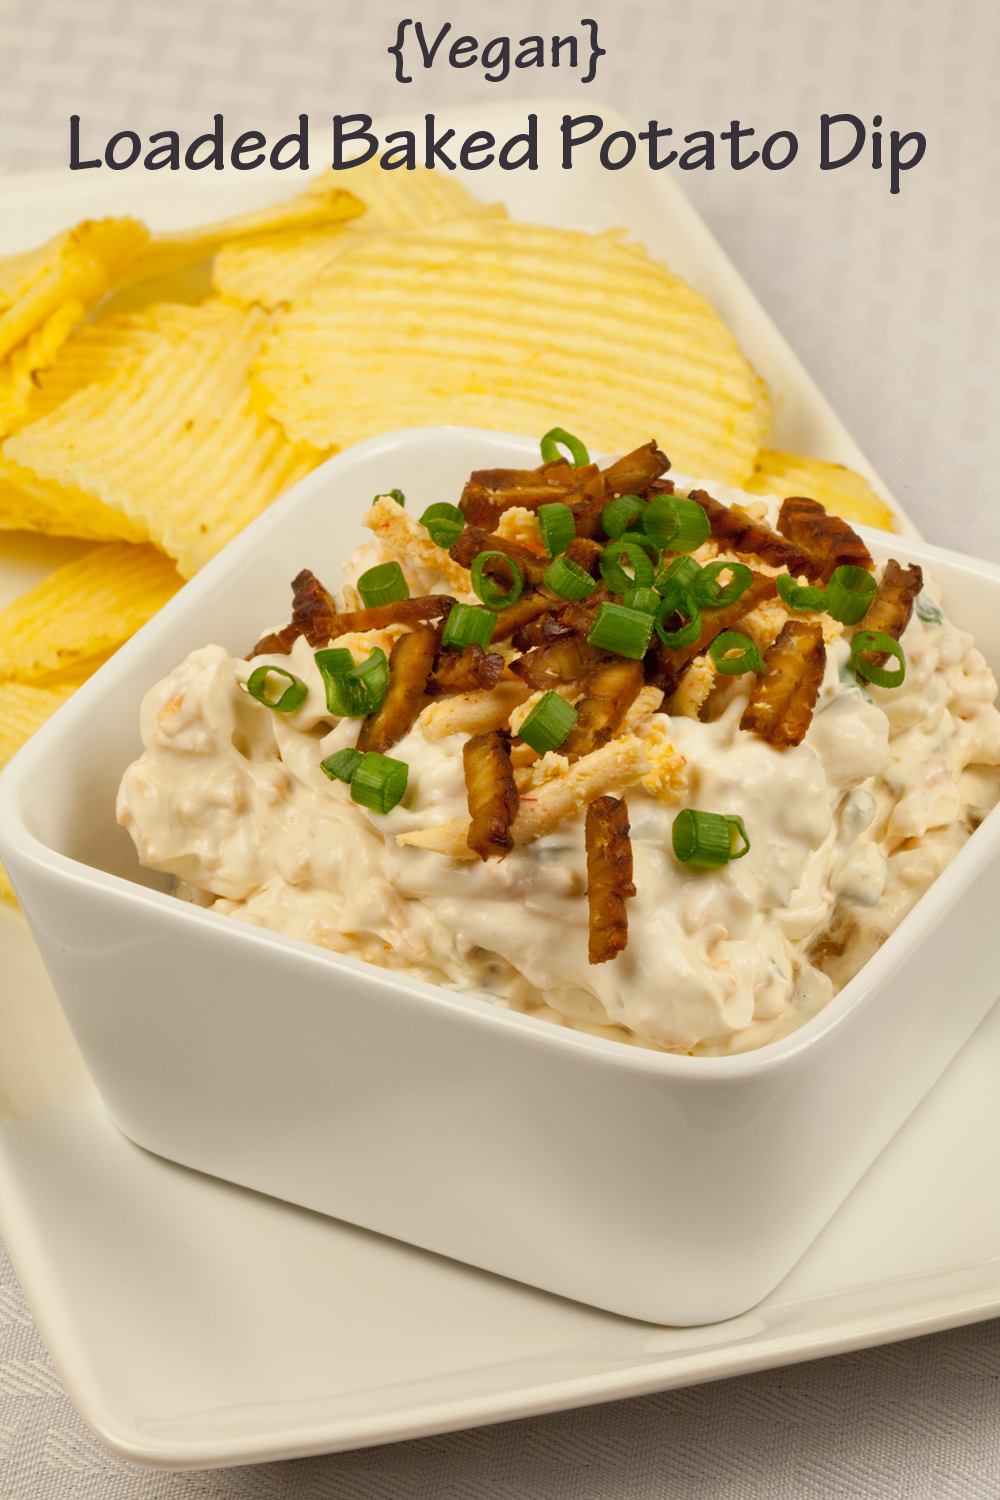 Loaded Baked Potato Dip (This stuff is REDONK!)